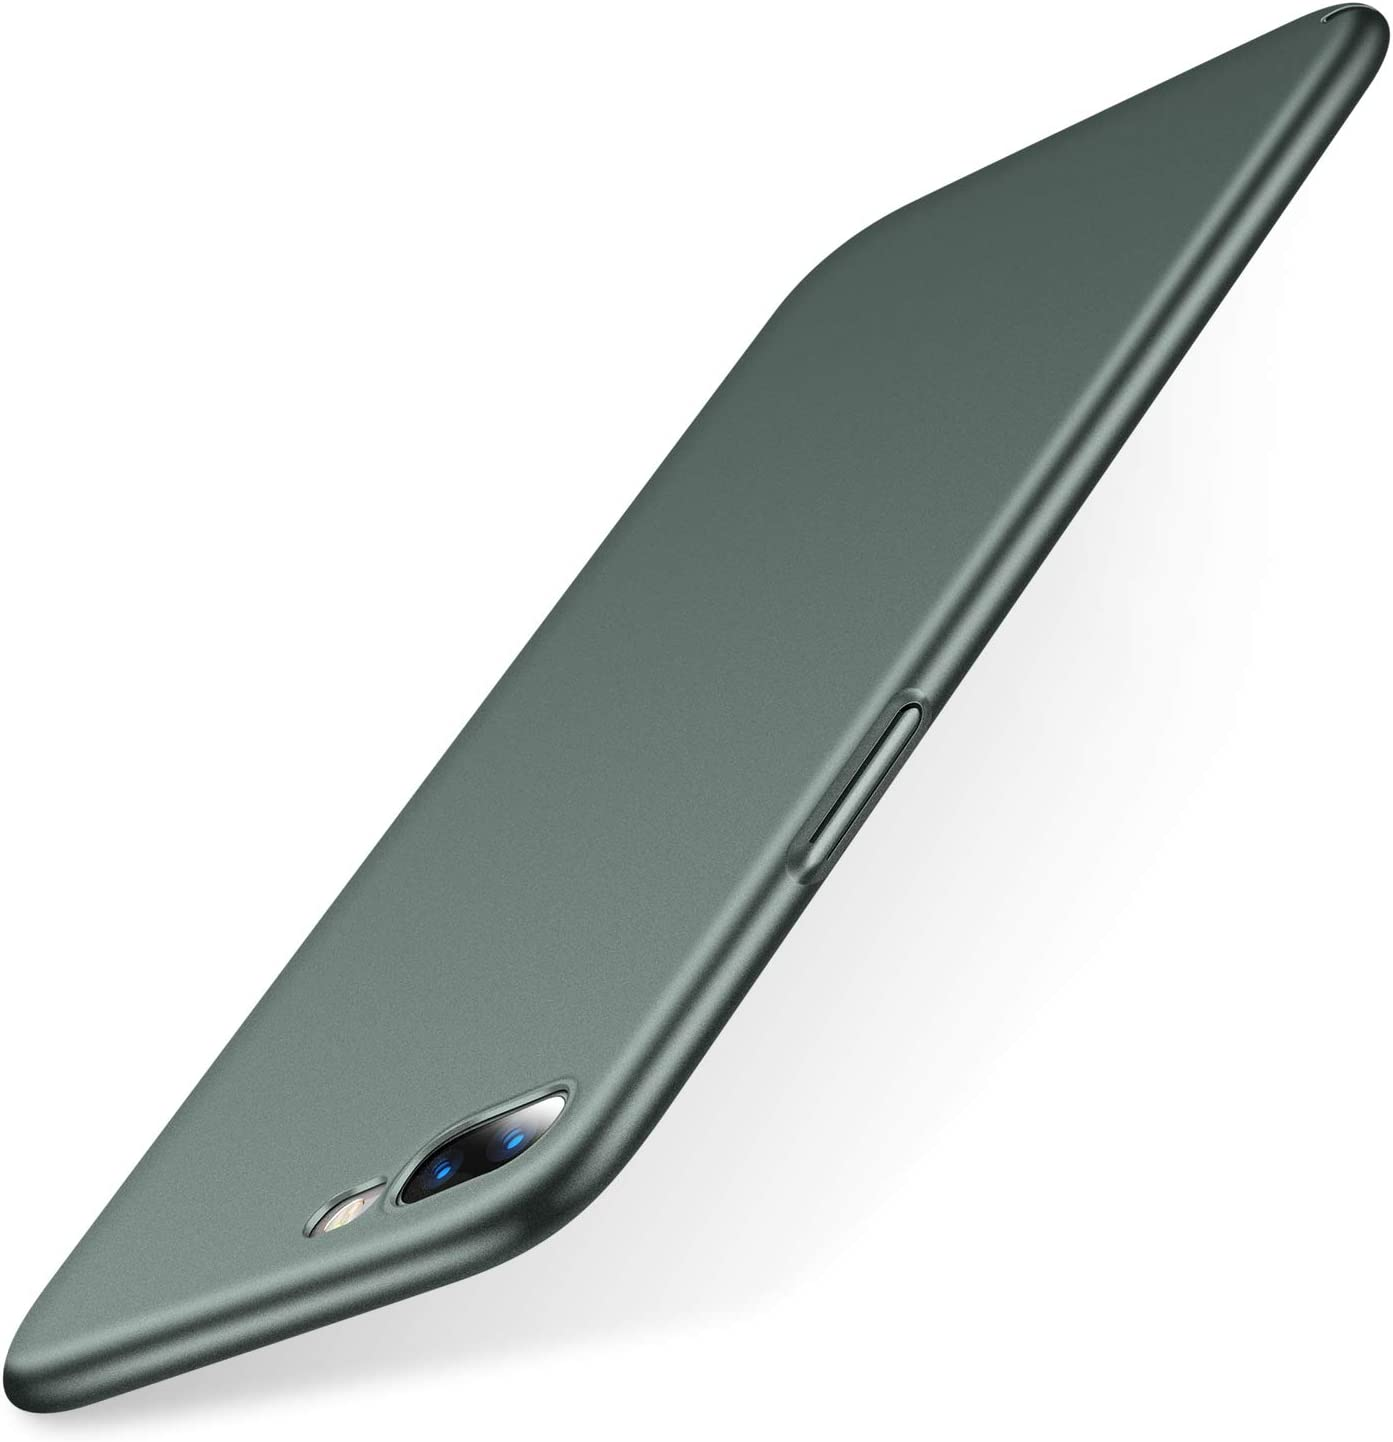 TORRAS Slim Fit Compatible for iPhone 8 Plus Case/iPhone 7 Plus Case, Hard Plastic PC Ultra Thin Phone Cover Case with Matte Finish Coating Grip, Midnight Green